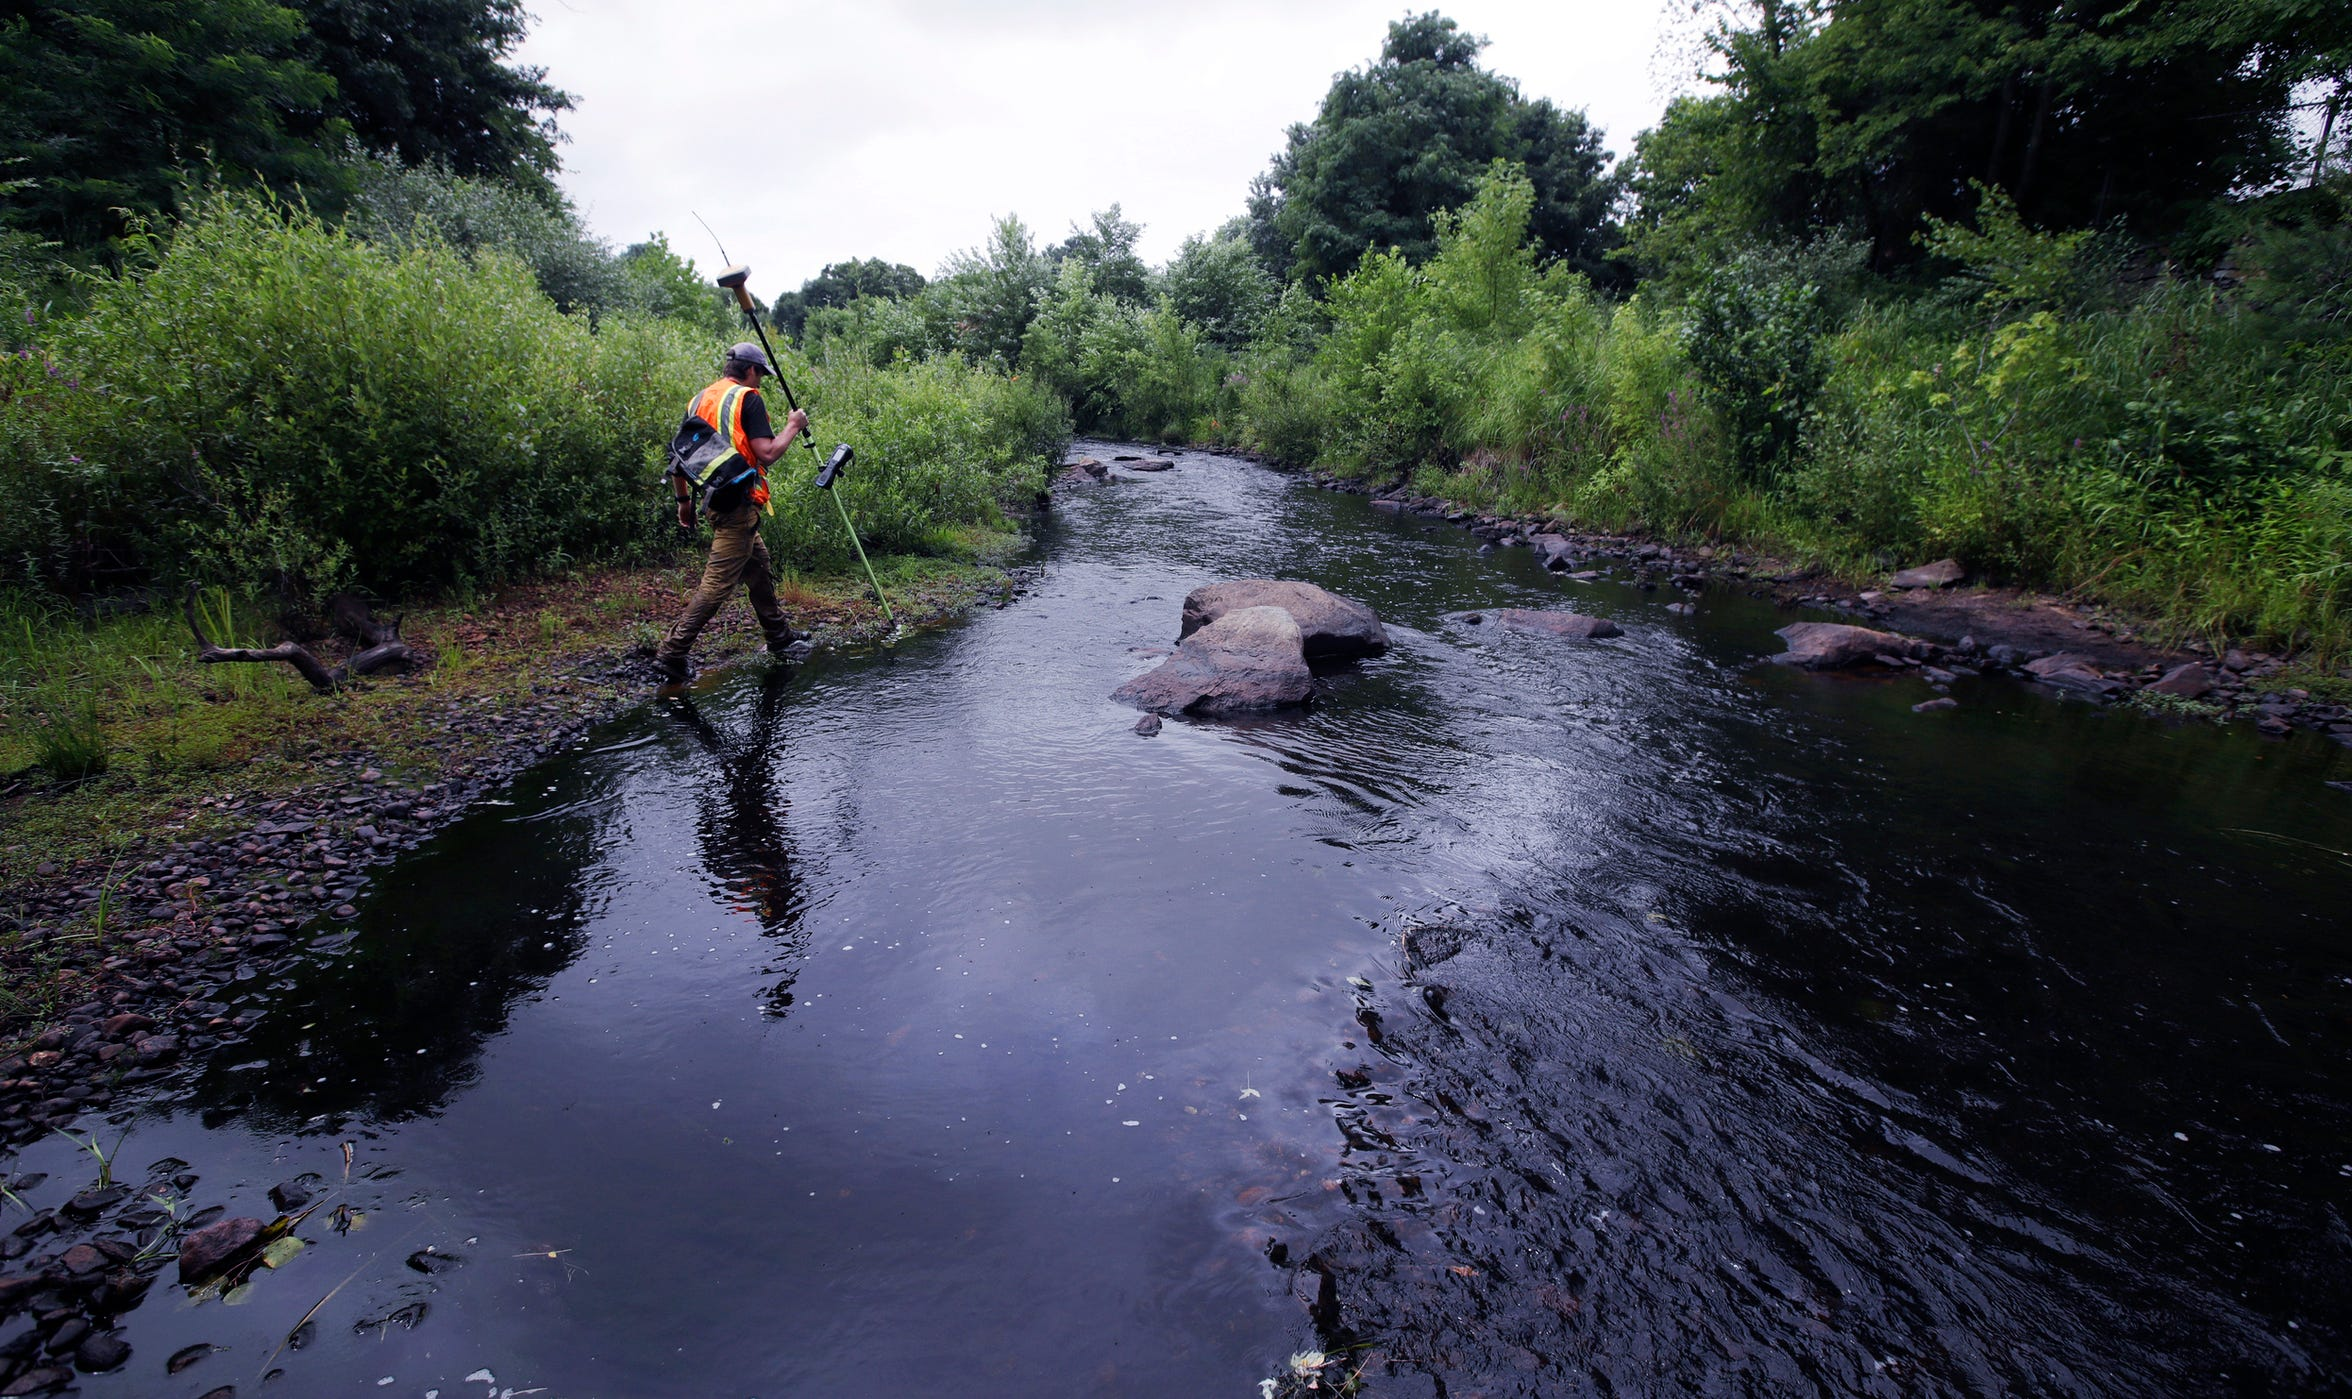 A surveyor walks the banks of the Mill River, at the site of the former Whittenton Pond Dam, just upstream from downtown Taunton, Mass., July 25, 2018. The dam was removed following concerns that the 170-year-old plus structure could fail, after it buckled and nearly failed in 2005. (AP Photo/Charles Krupa)